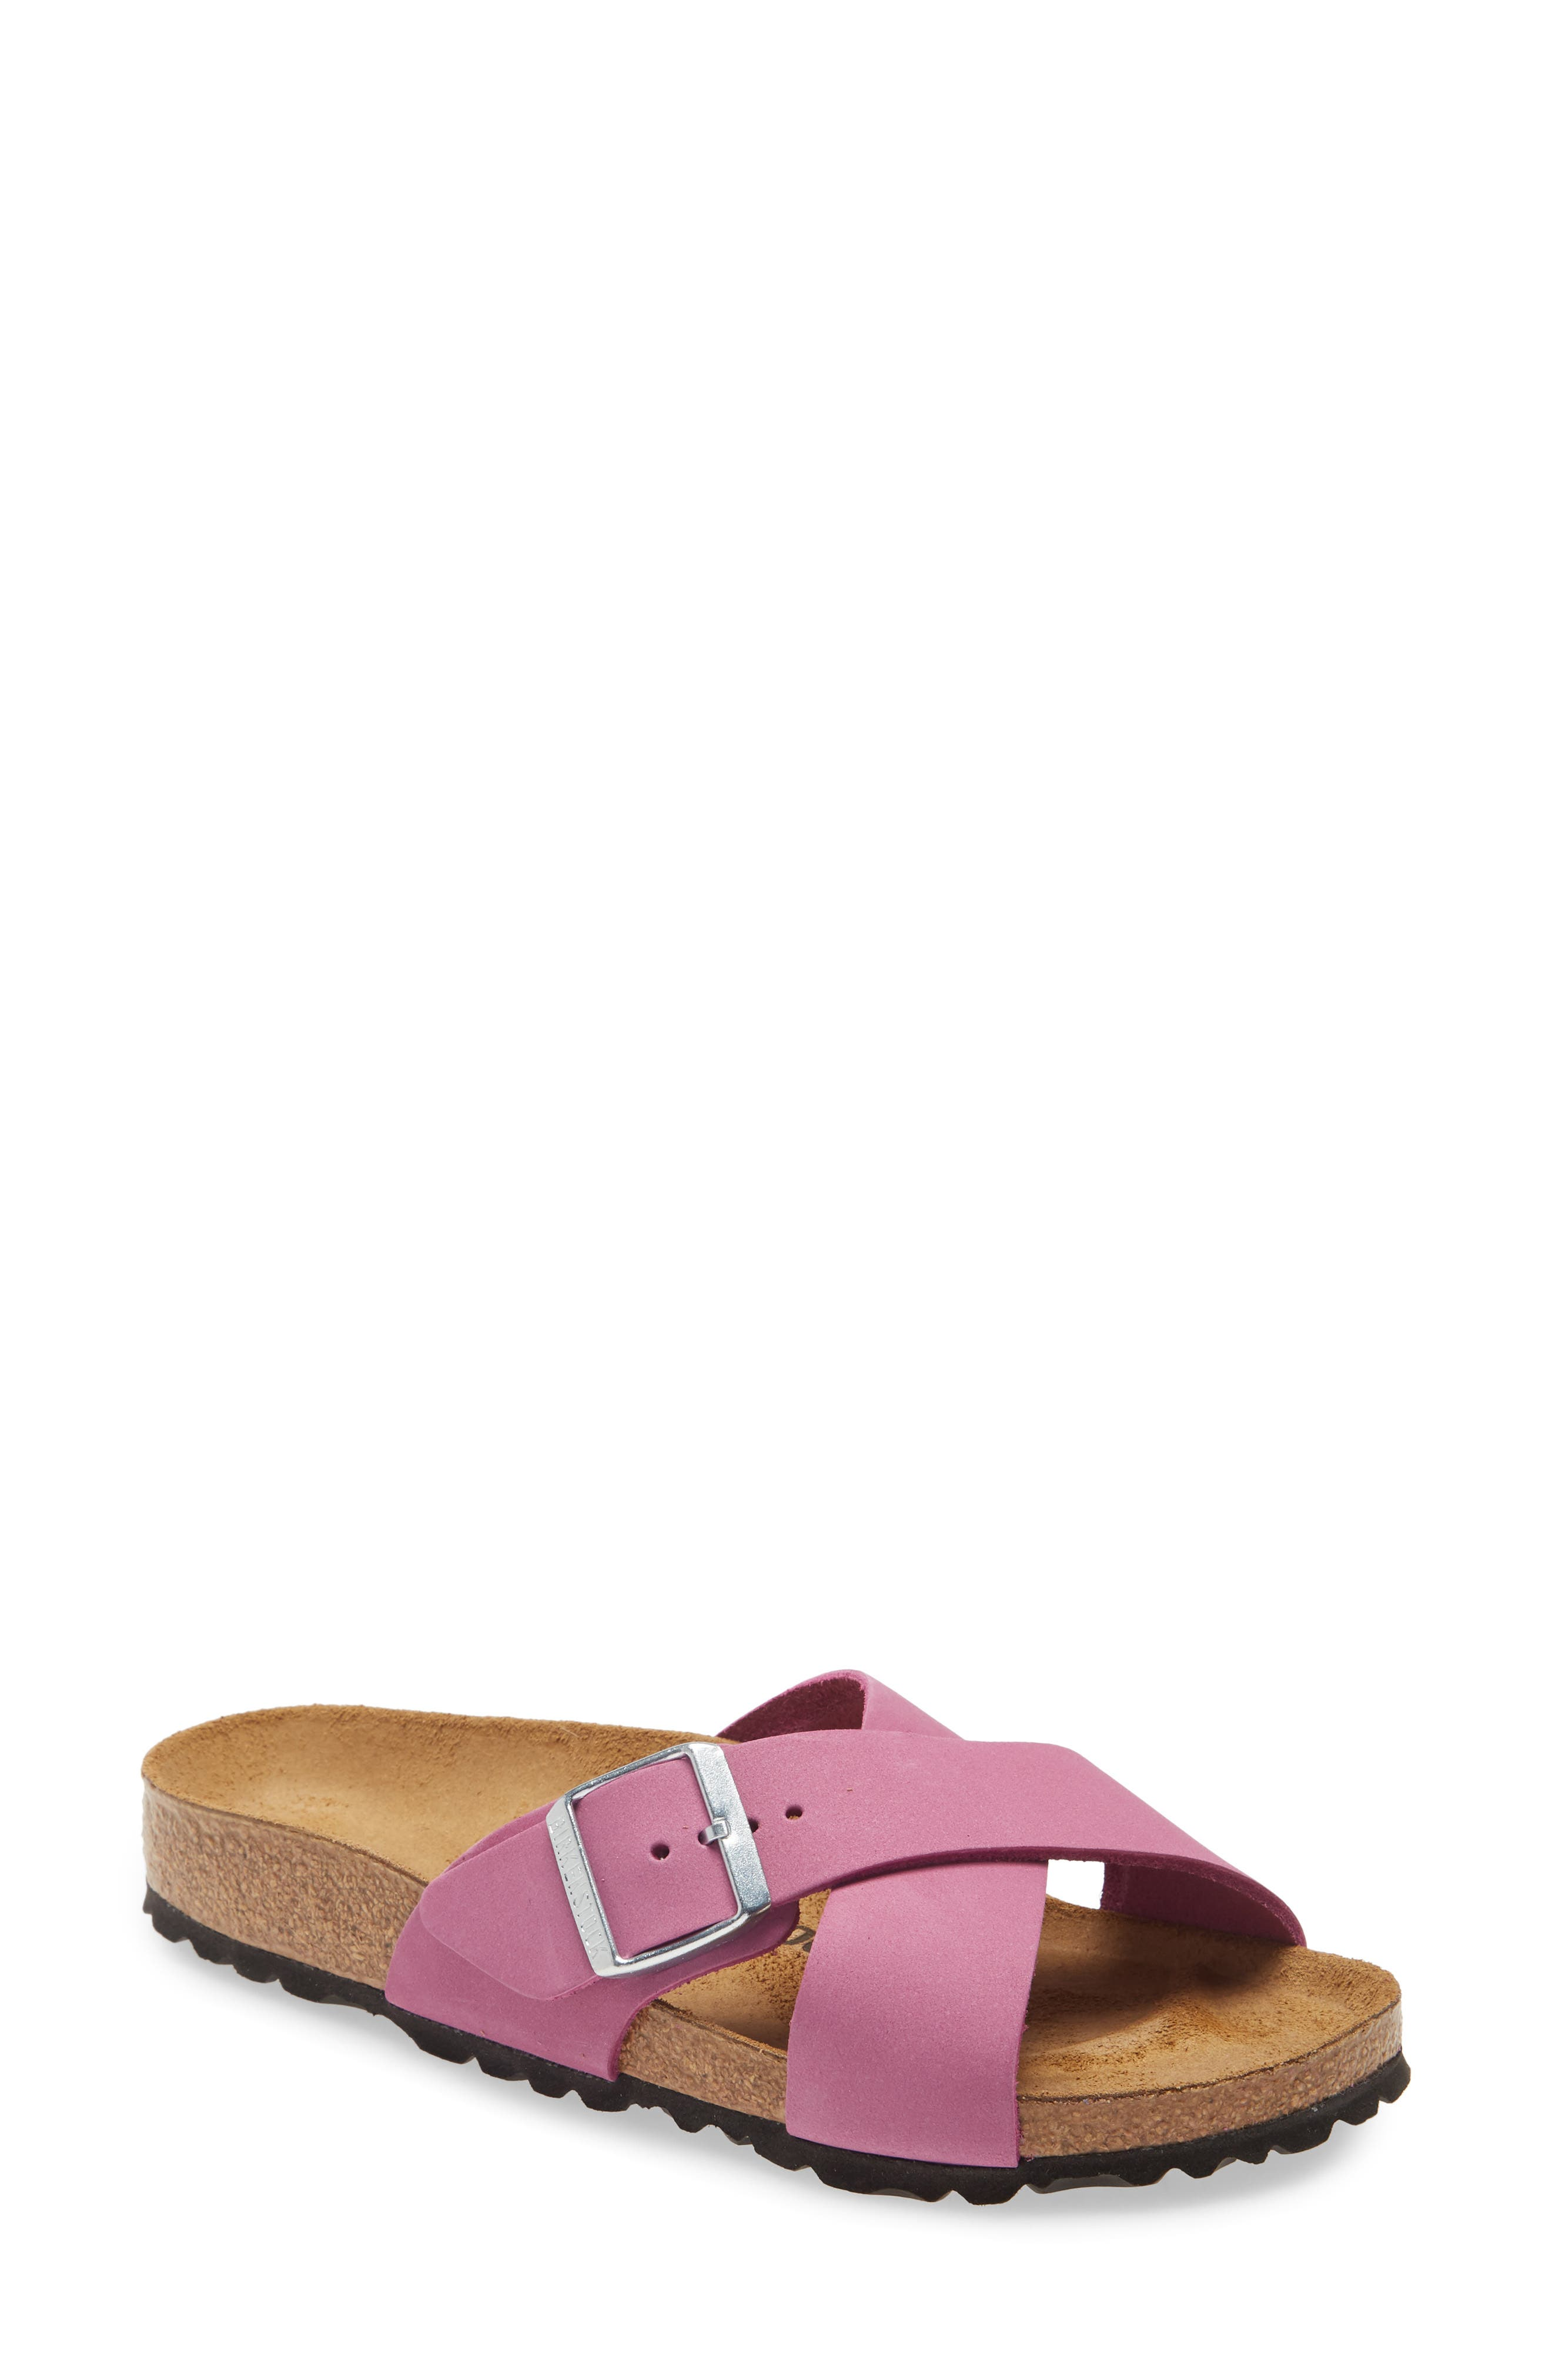 Smooth nubuck leather elevates the sophistication of a buckled slide sandal boasting all-day comfort and arch support. Style Name: Birkenstock Siena Slide Sandal (Women). Style Number: 6042765. Available in stores.